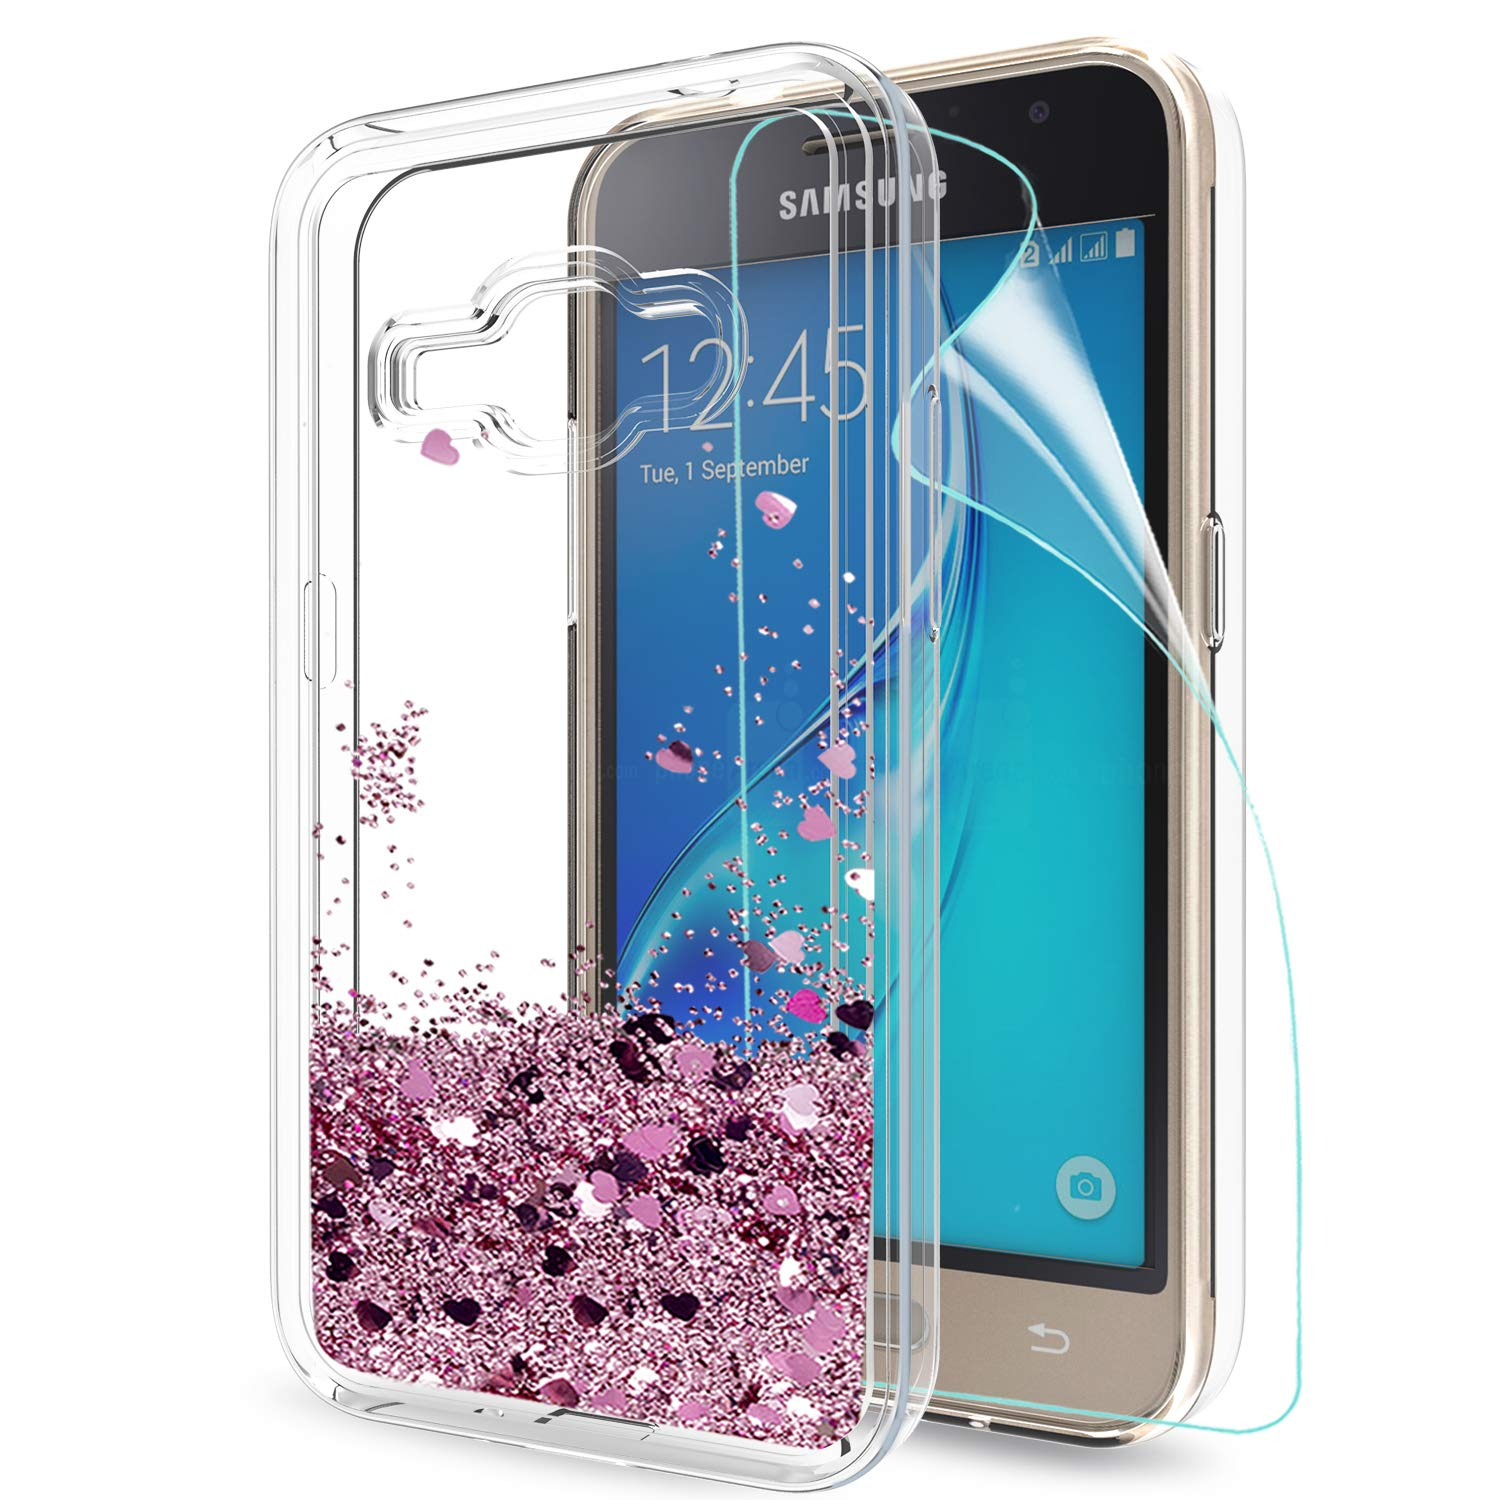 cover samsung galaxy j1 2016 silicone 3d